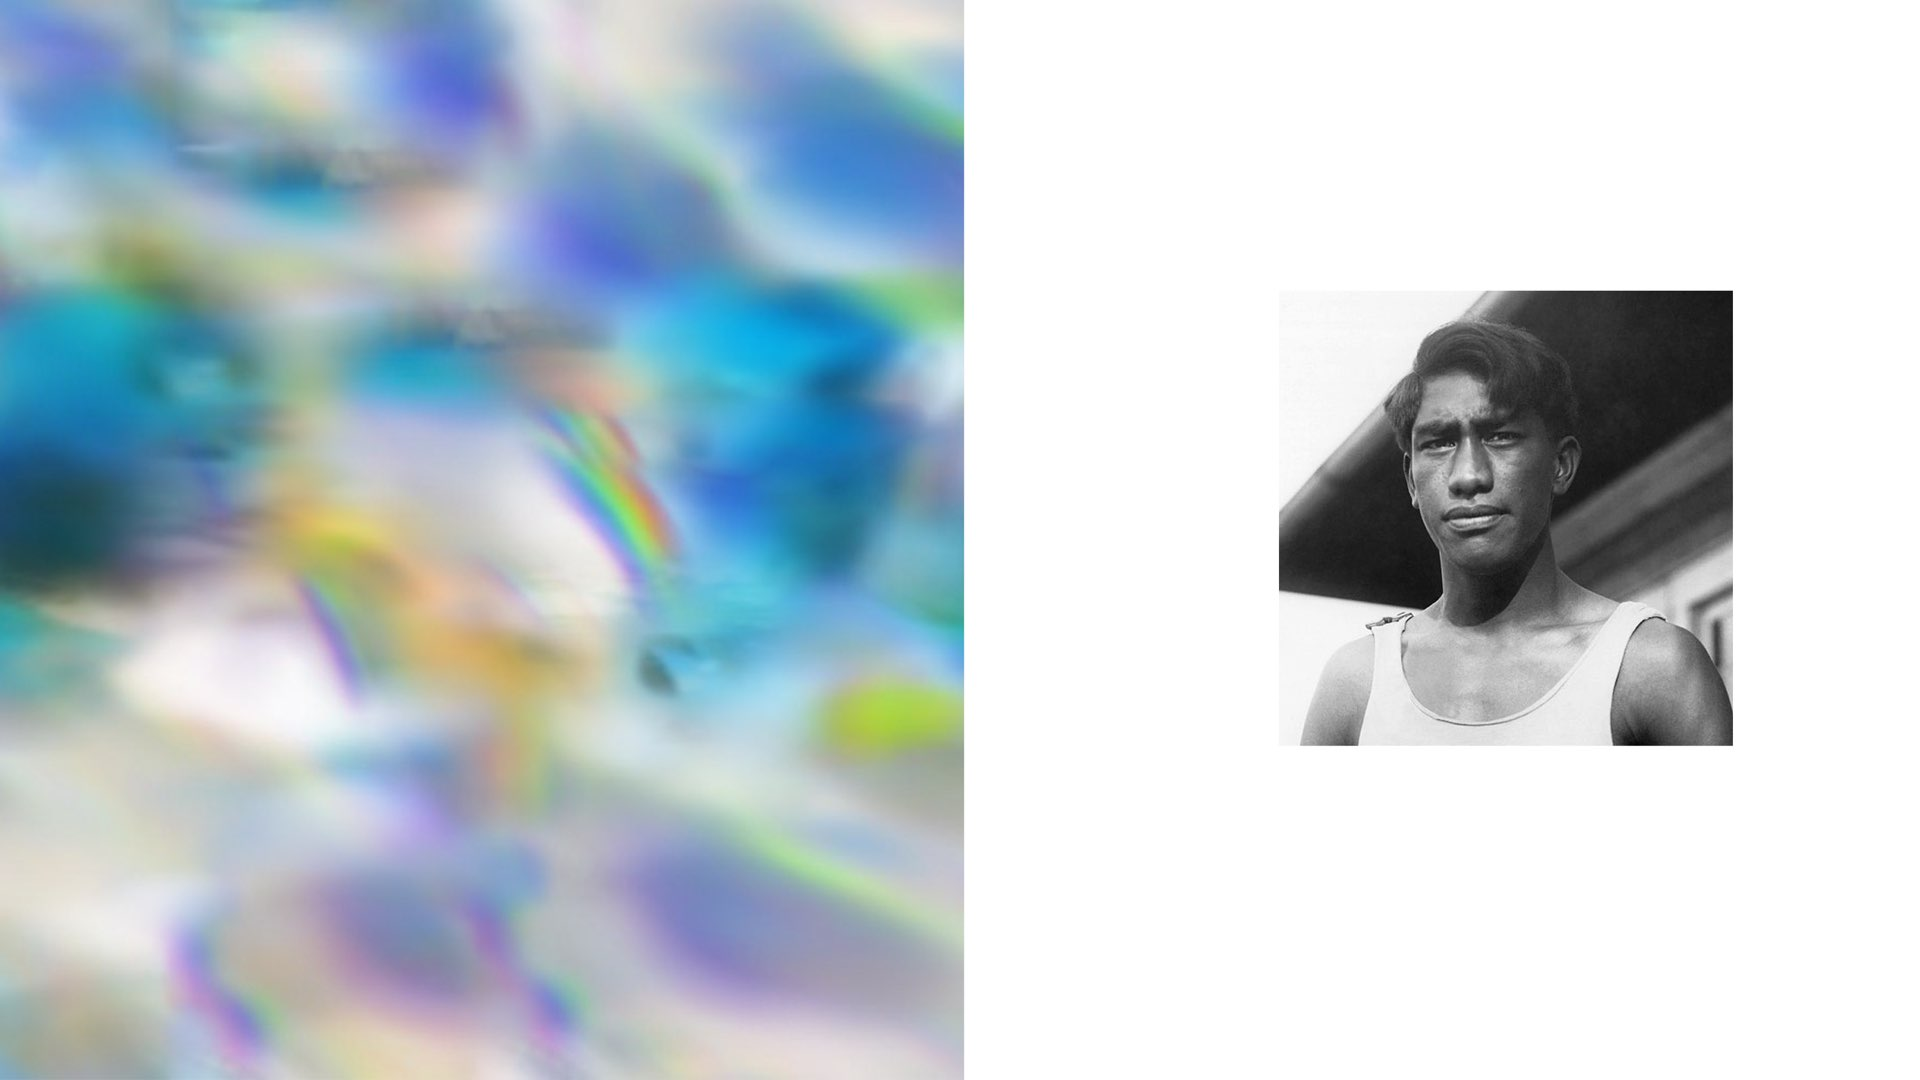 Artist Maja Petrić used machine learning algorithms to create this sky graphic, shown alongside a portrait of man